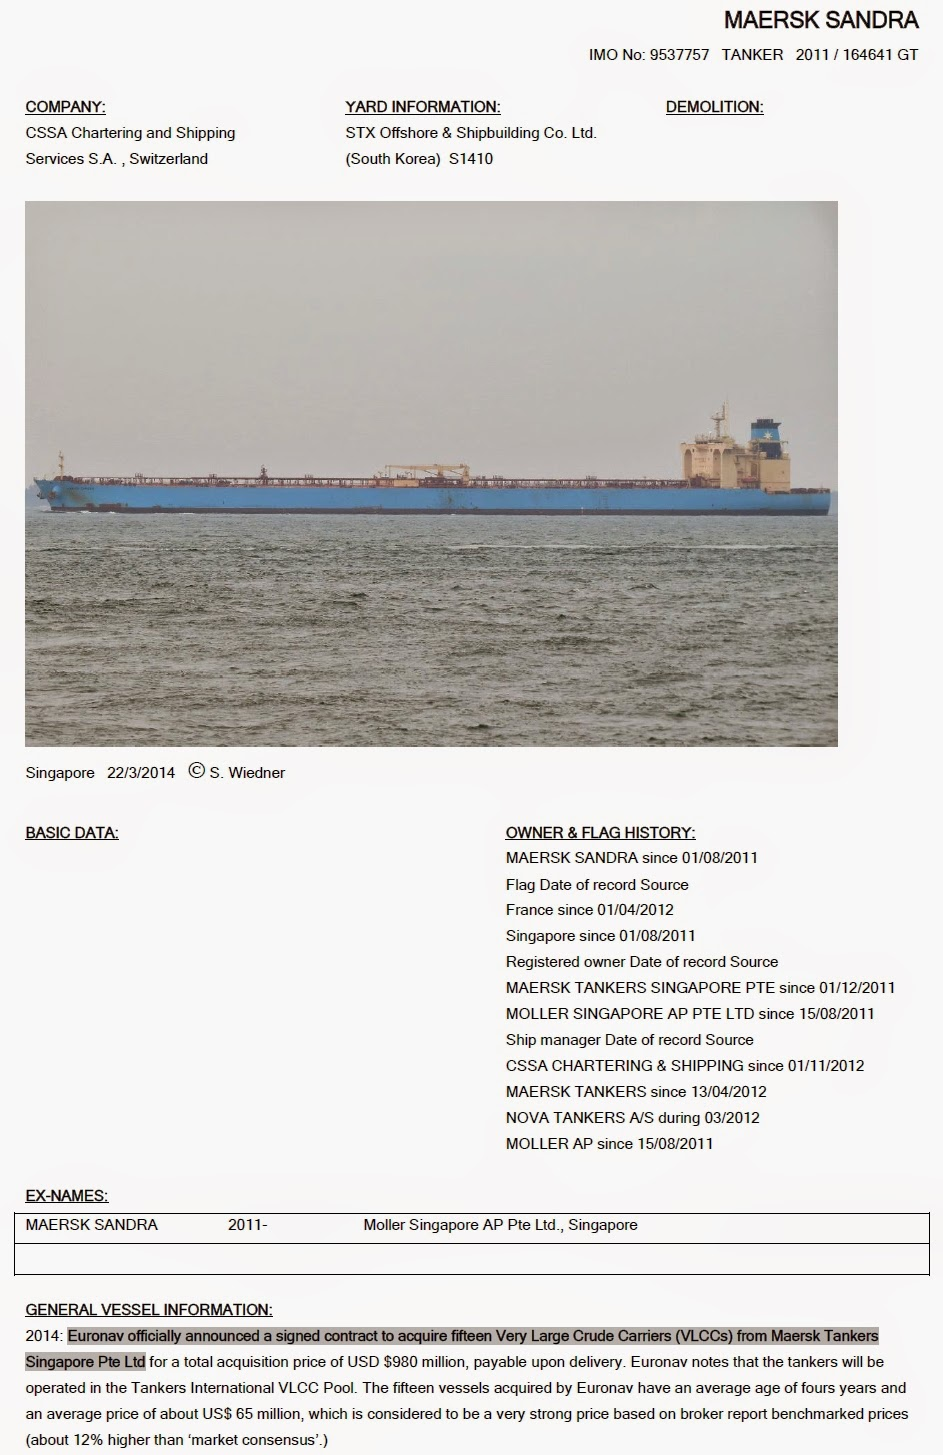 Cargo-Vessels-International / Non-Commercial-Shipping-Research